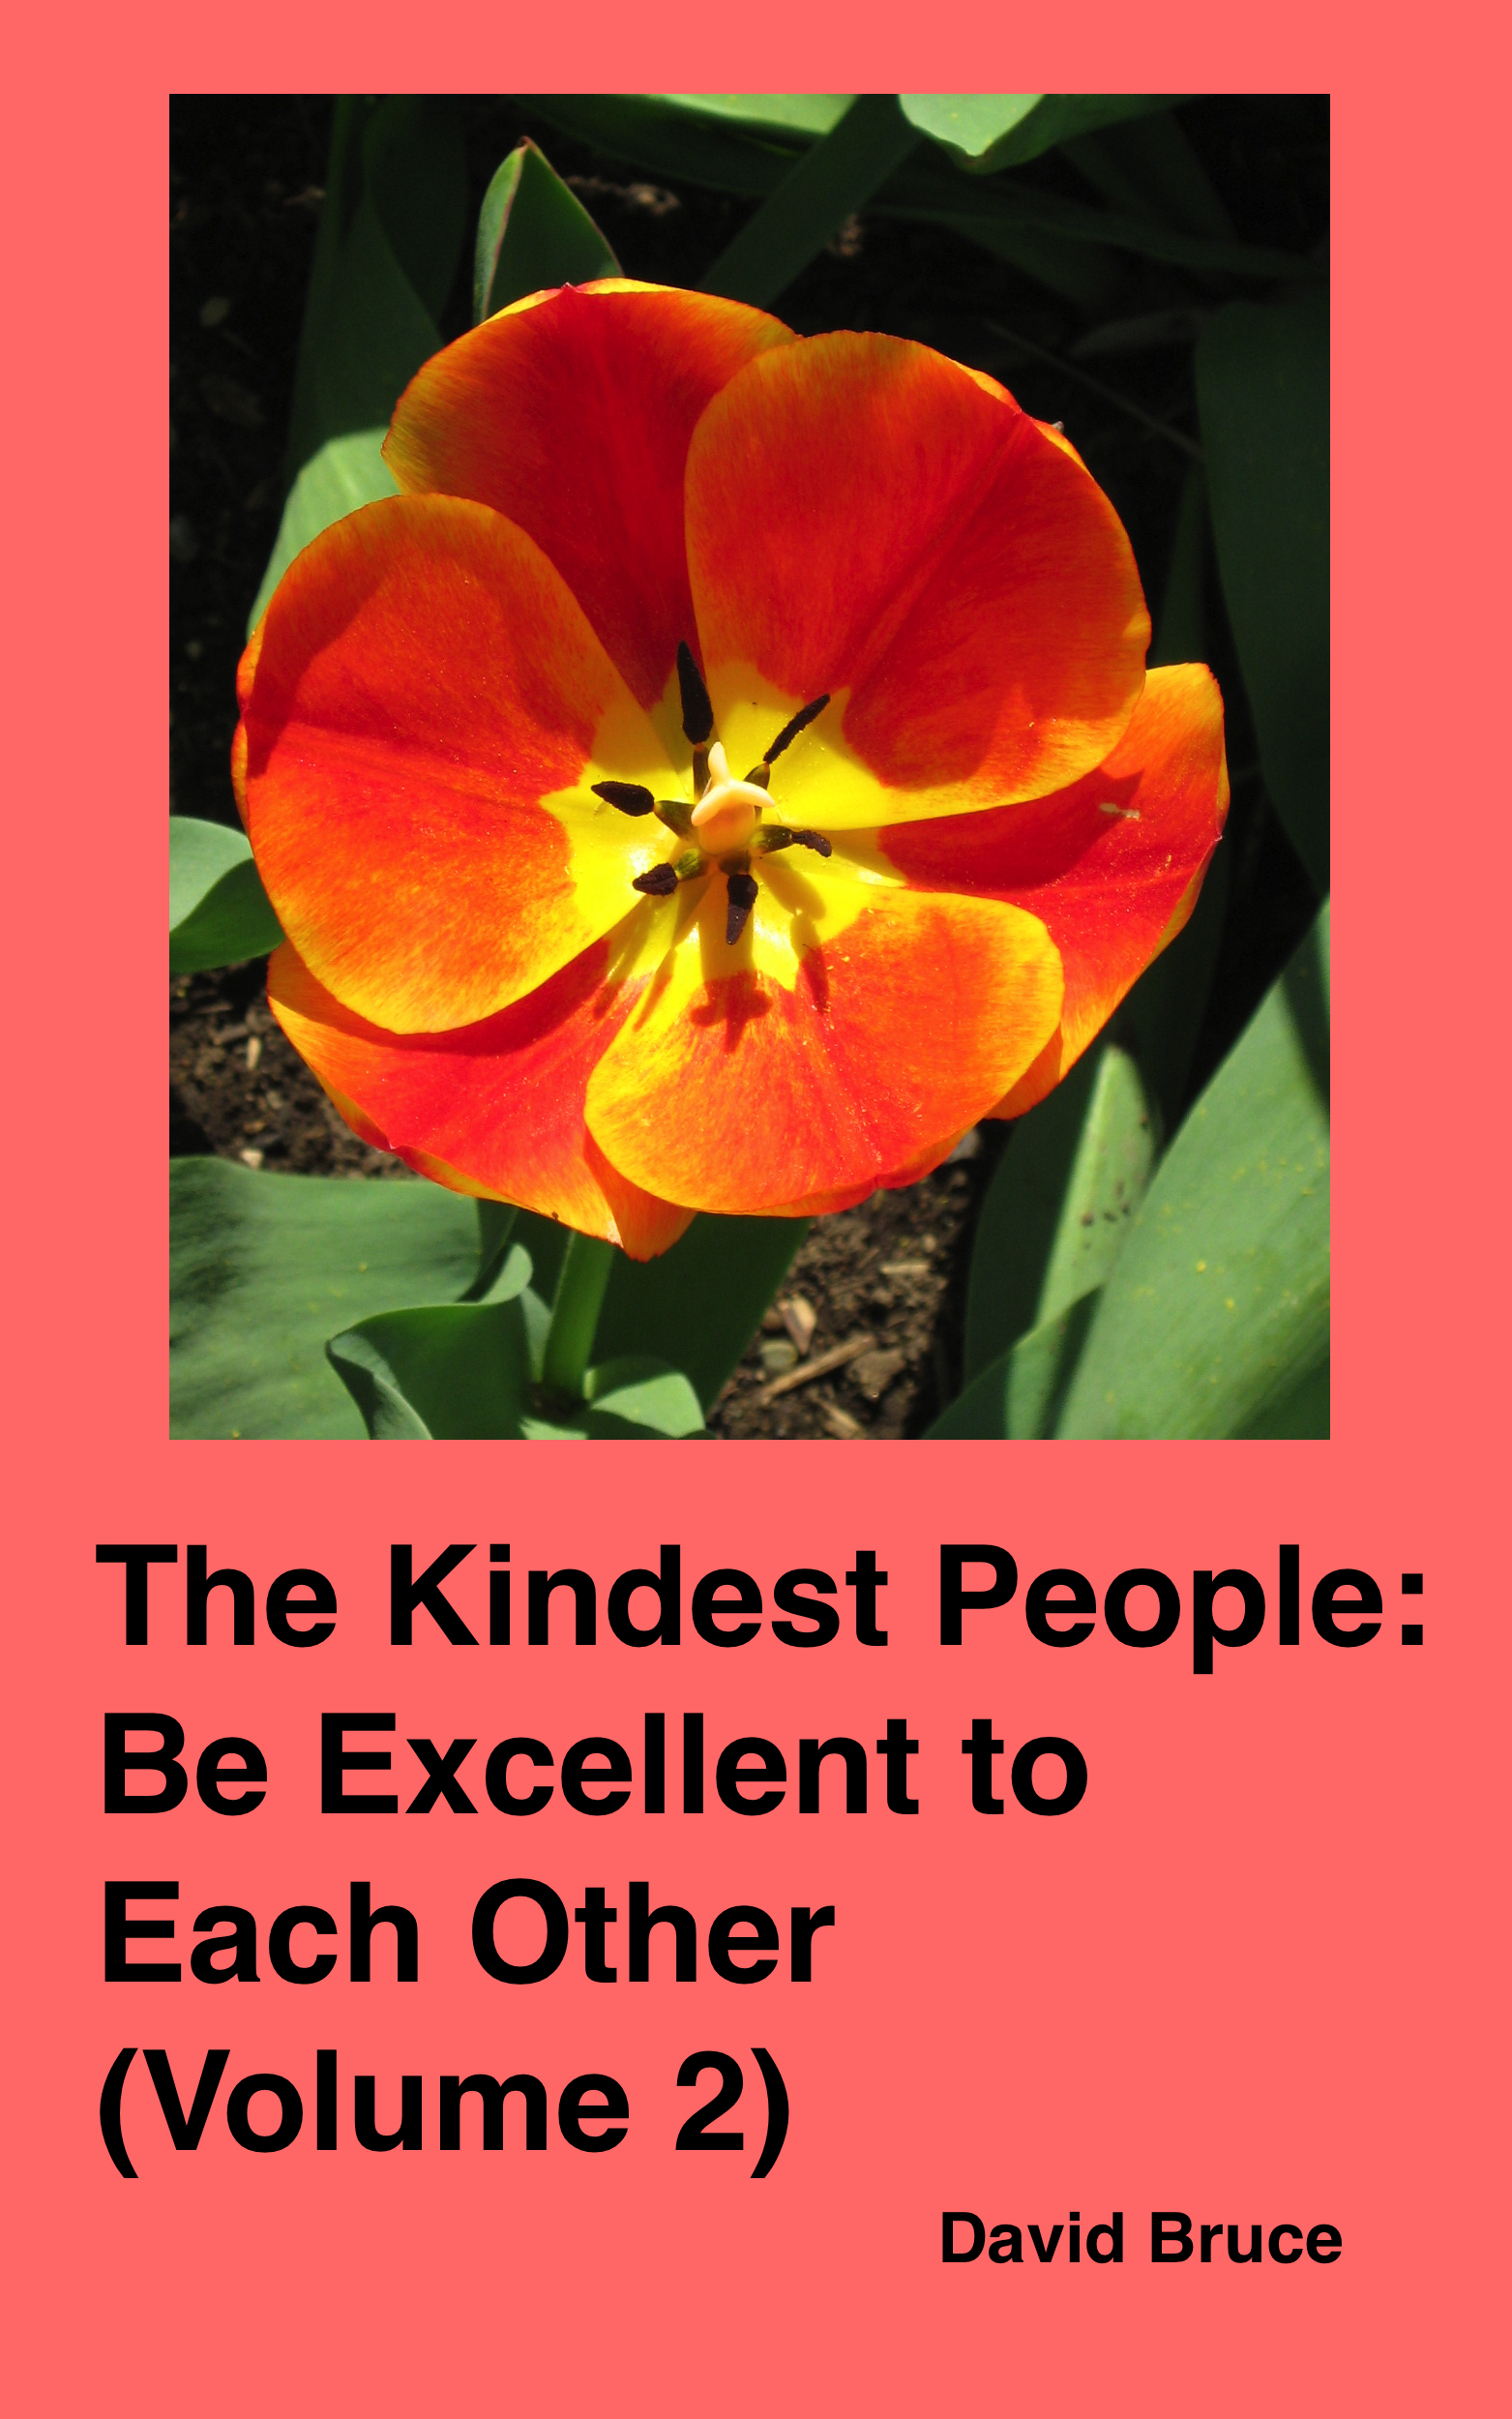 The Kindest People: Be Excellent to Each Other (Volume 2)